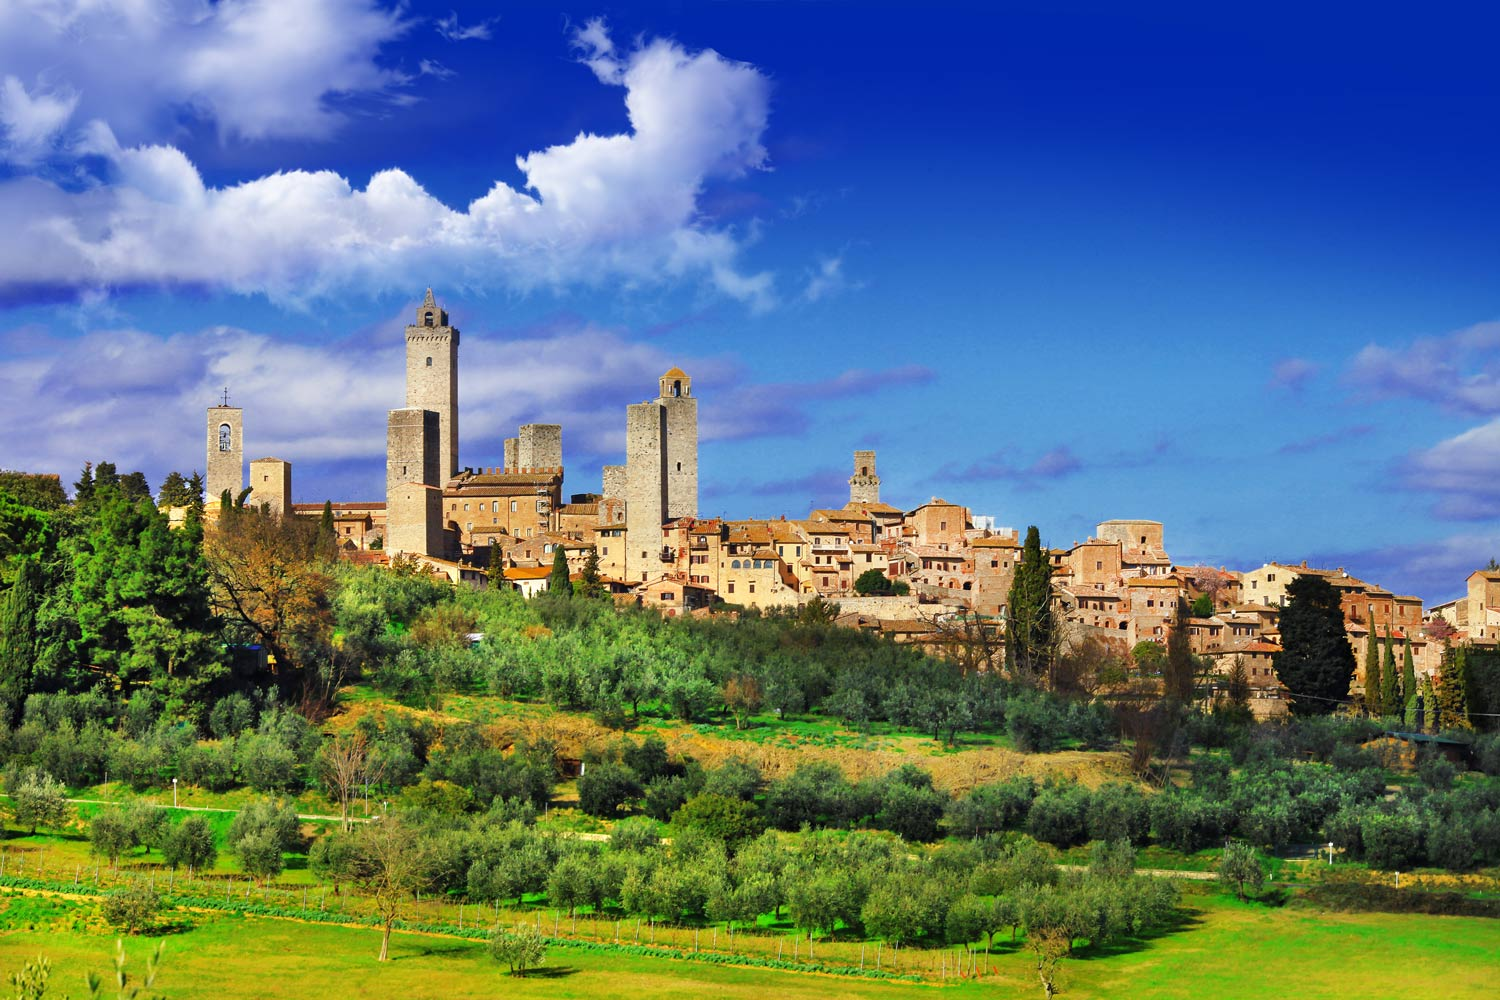 san go s map with Daytour Siena Sangimignano Monteriggioni on Buenos Aires also Kent101299 further 1KgVw Scripps Institution Of Oceanography Poway California furthermore Las Vegas Mccarran International Airport Map further Map Of Southern Georgia.